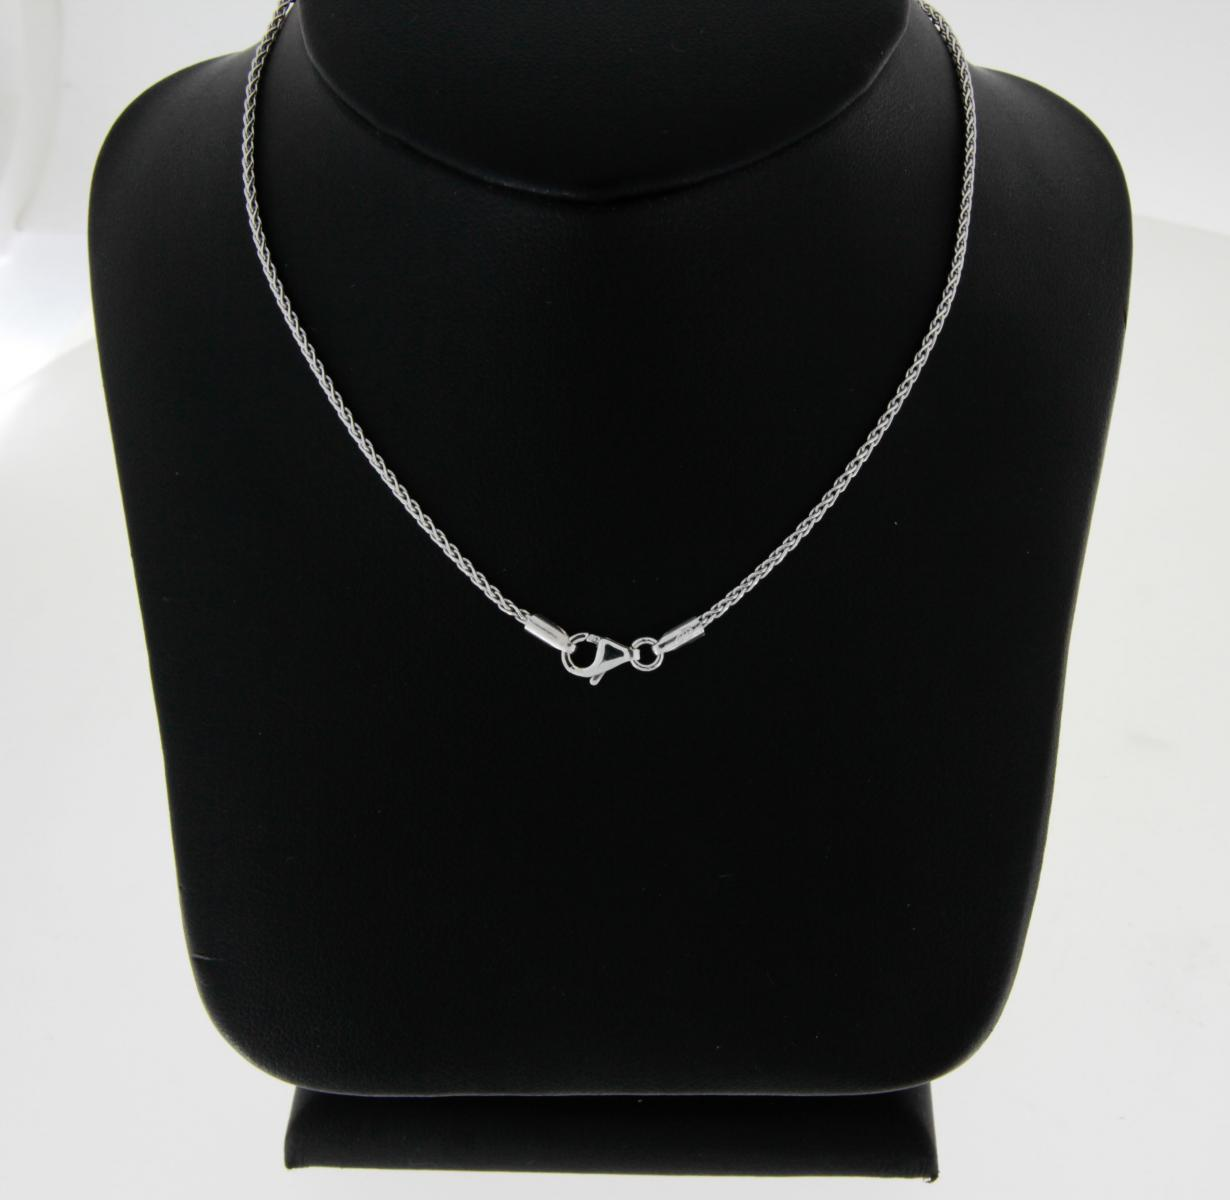 by product fy necklace bonner brilliant myia m silver in